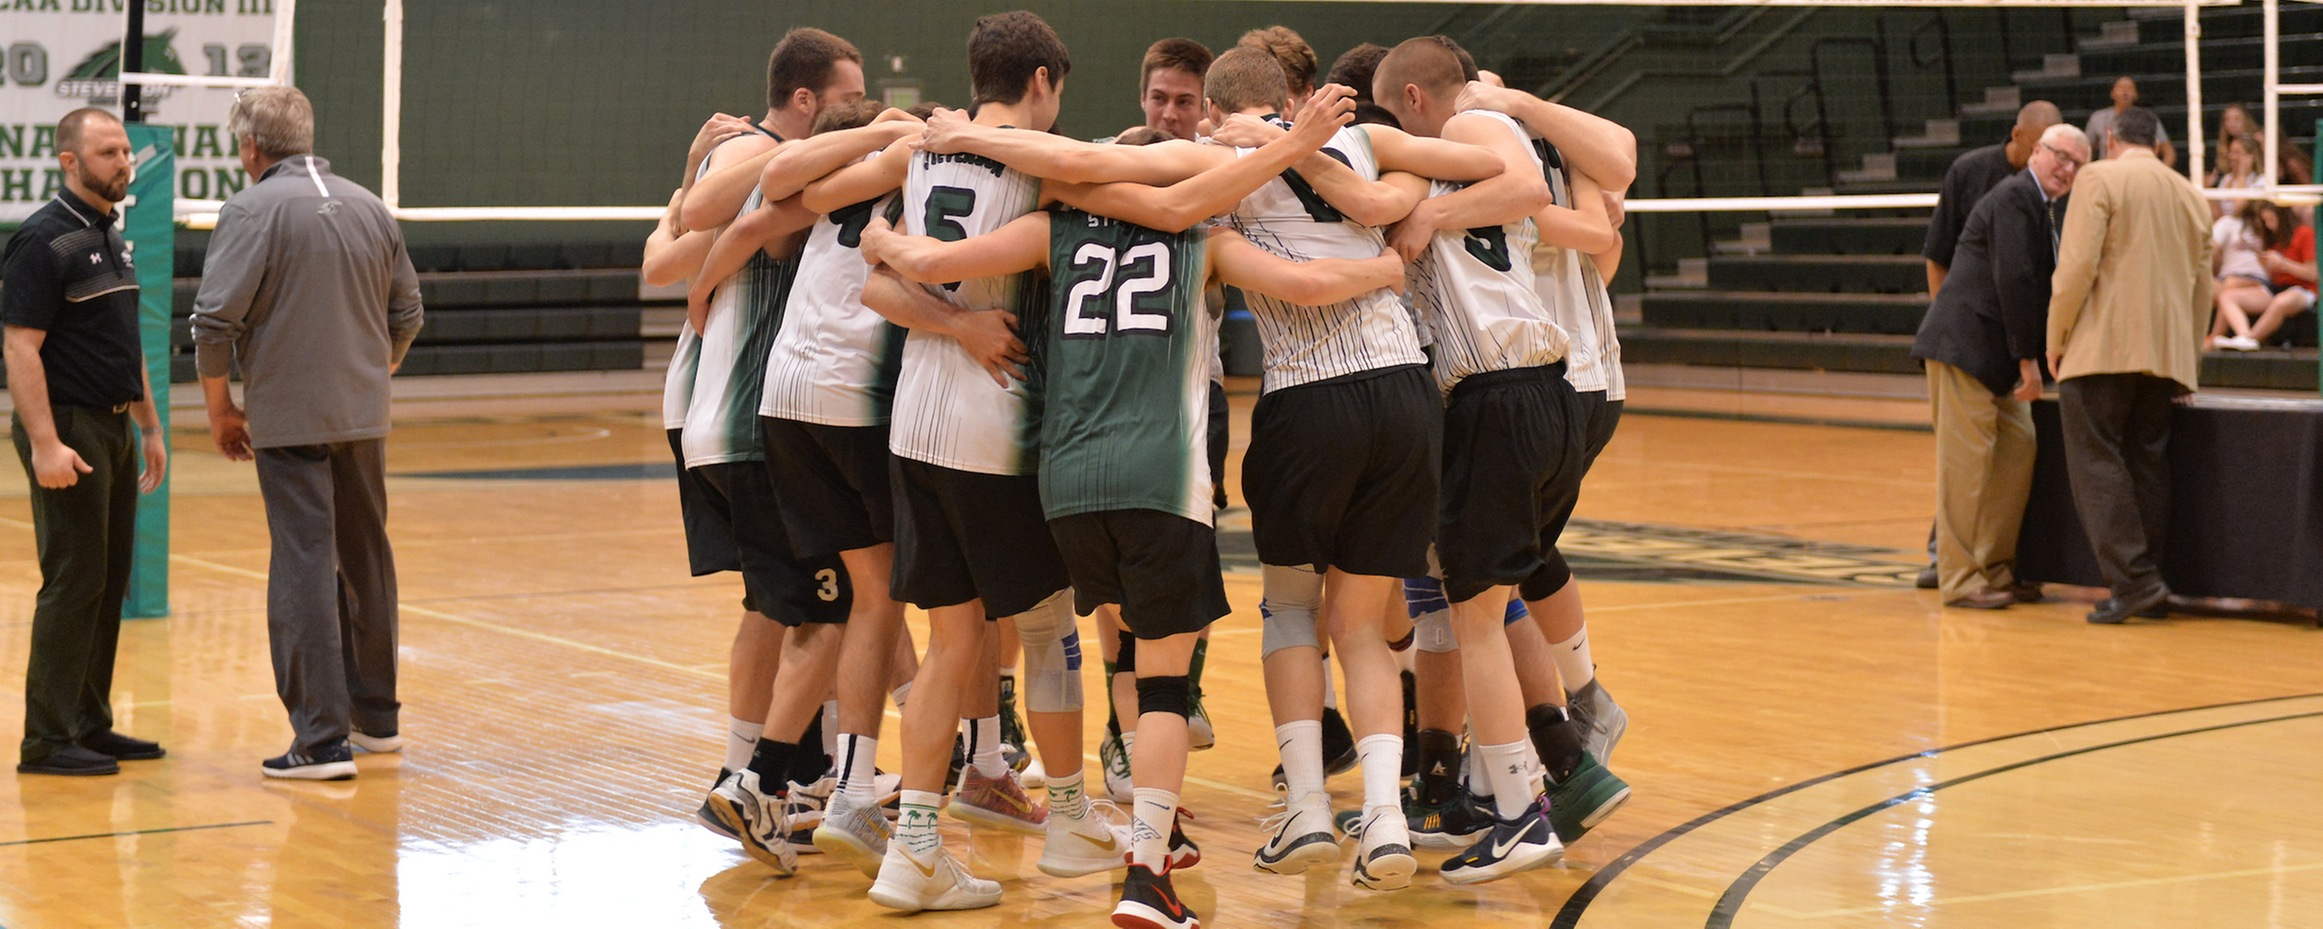 Men's Volleyball Ranked in AVCA Division III Top-15 Final Poll